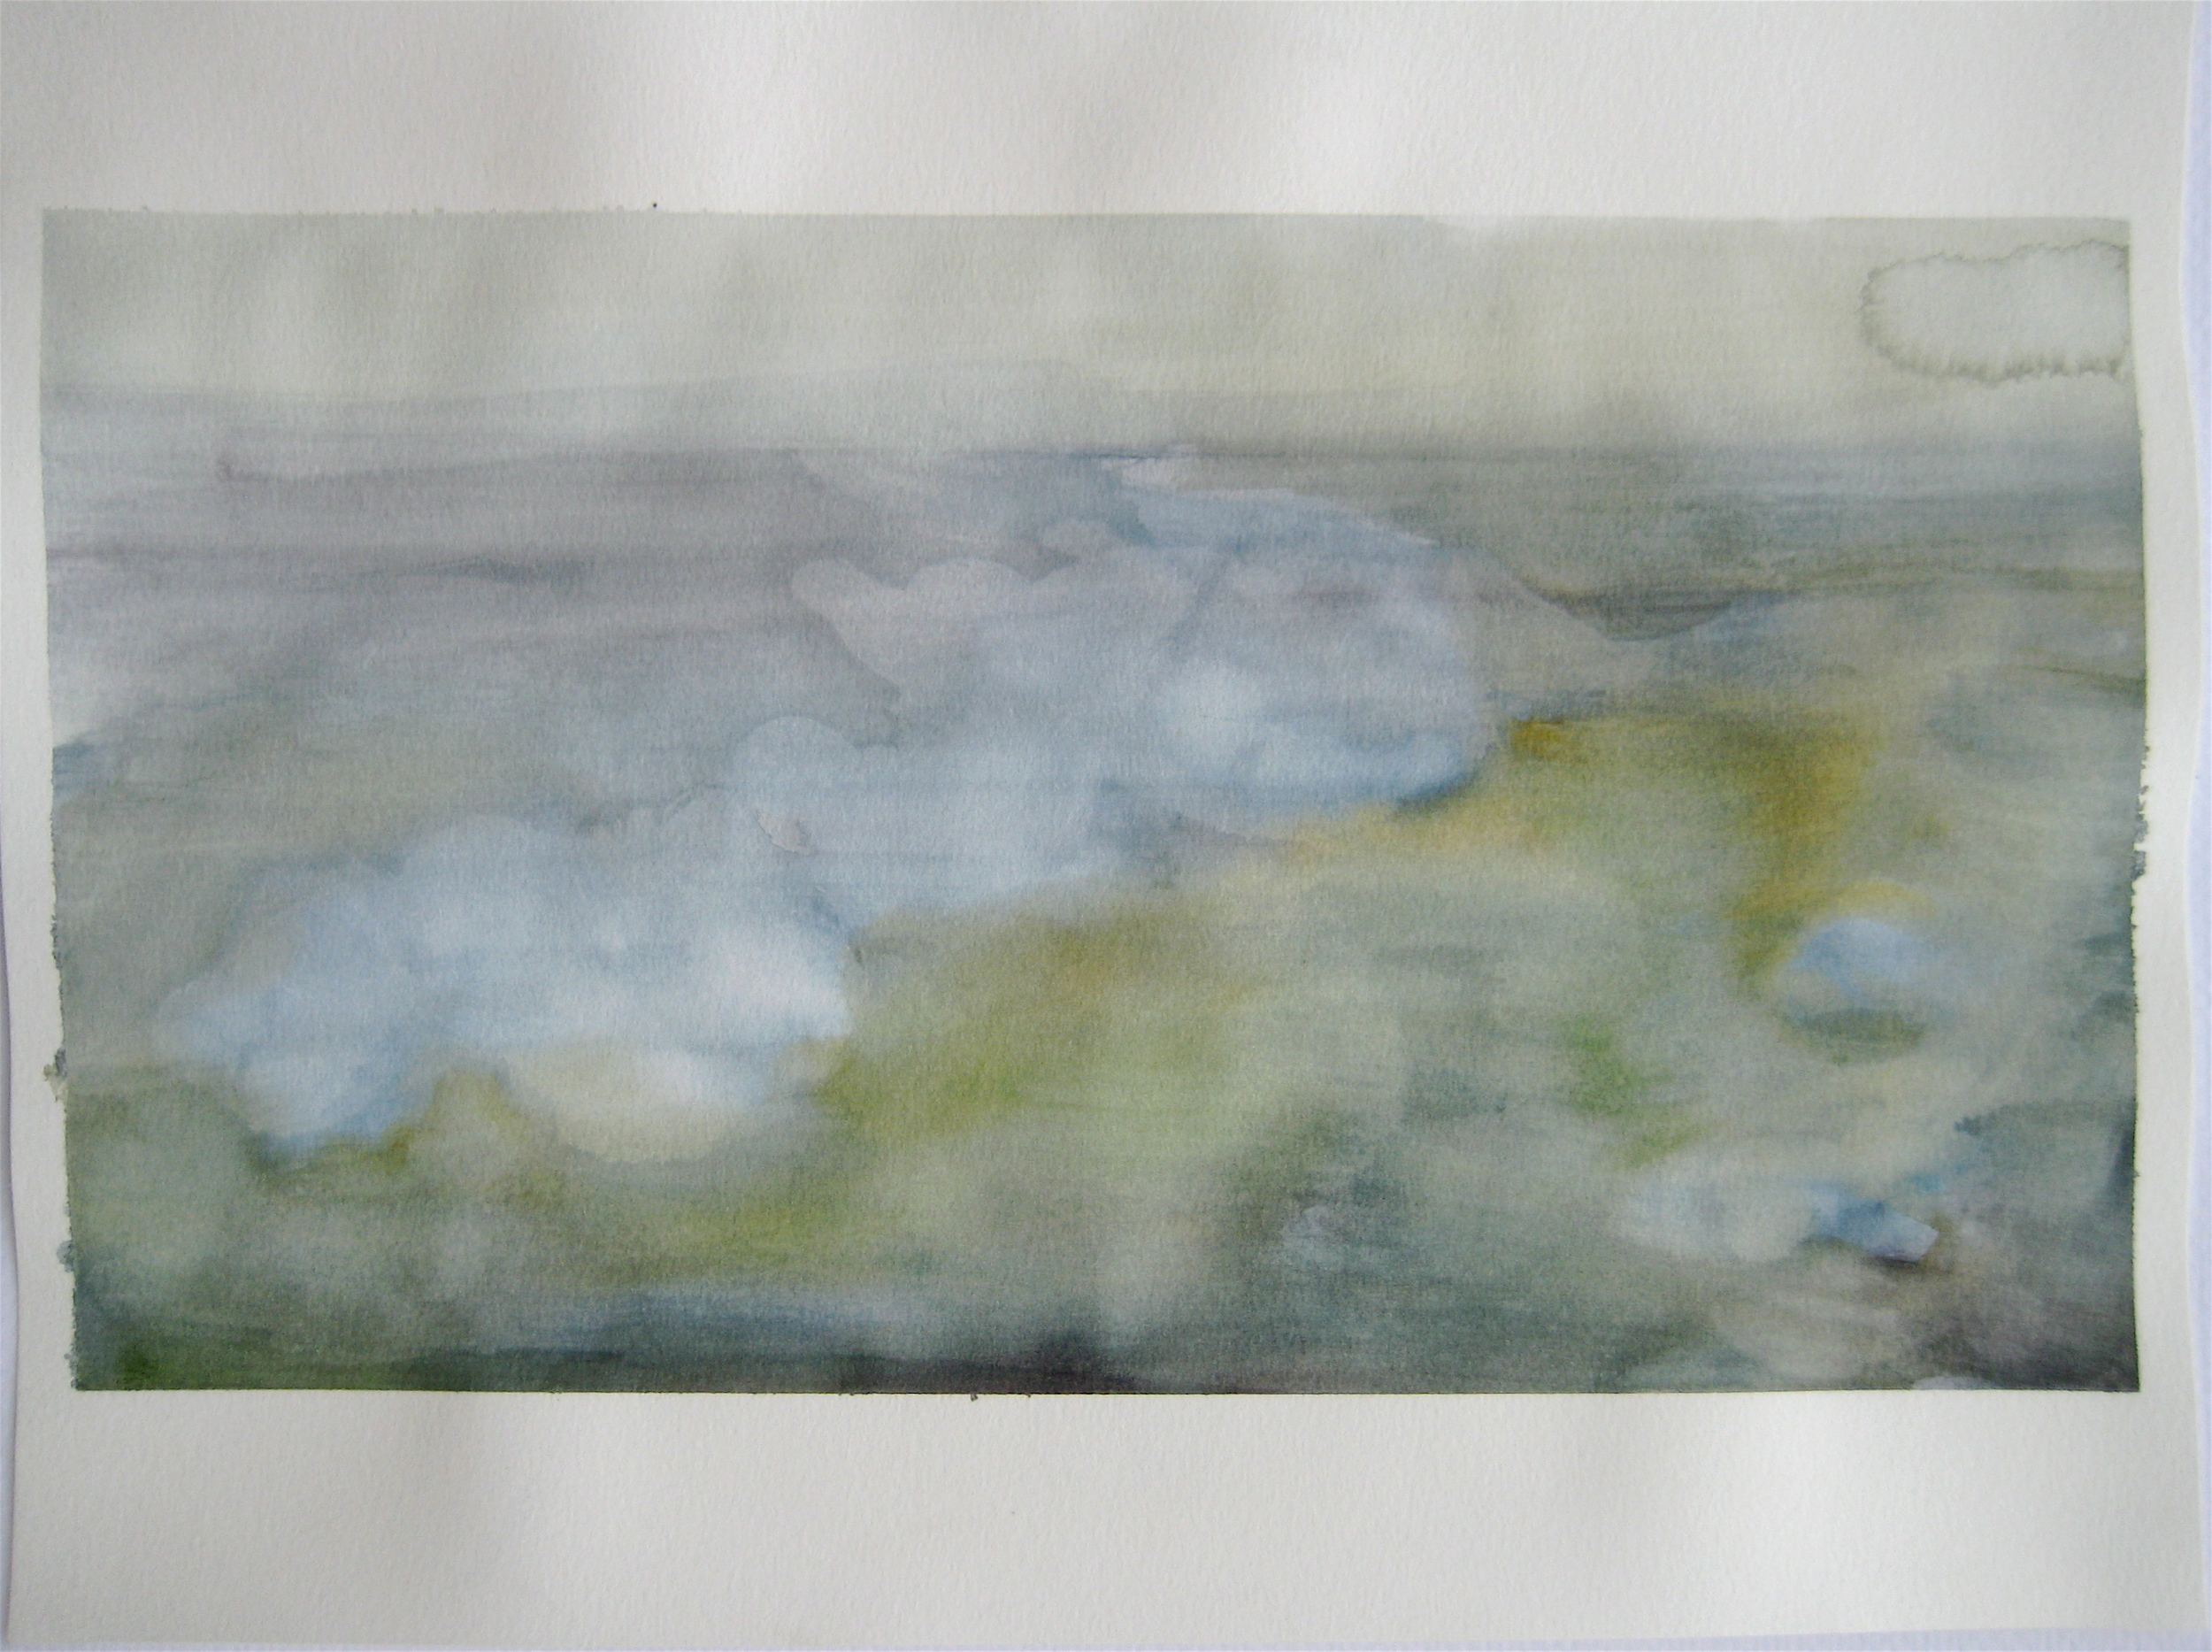 """Sky #6.3/2007, 2007, watercolor on paper paper: 9 1/2""""x12 6/8""""; image: 6 7/8""""x12 1/8"""""""